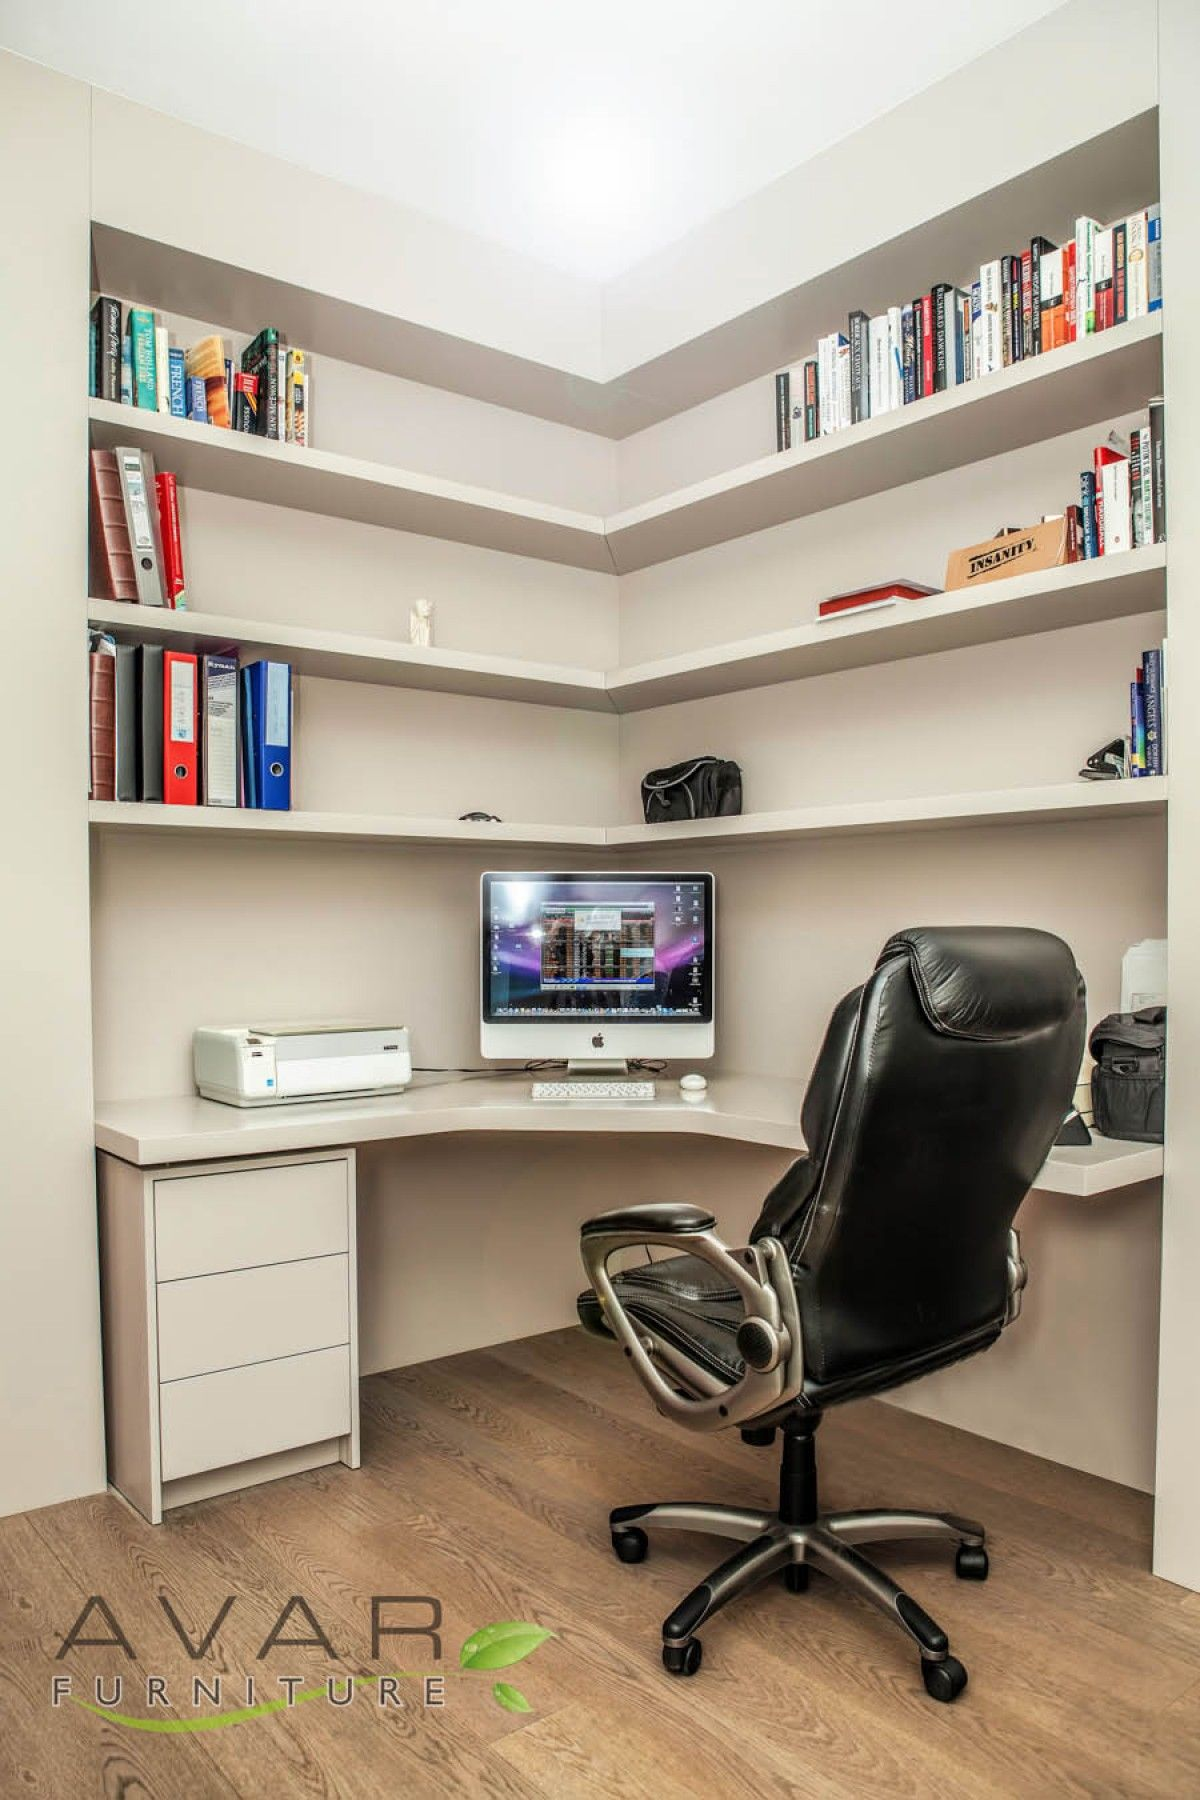 Home Office Under Stairs Design Ideas: 'L' Shape Office Desk From Avar Furniture